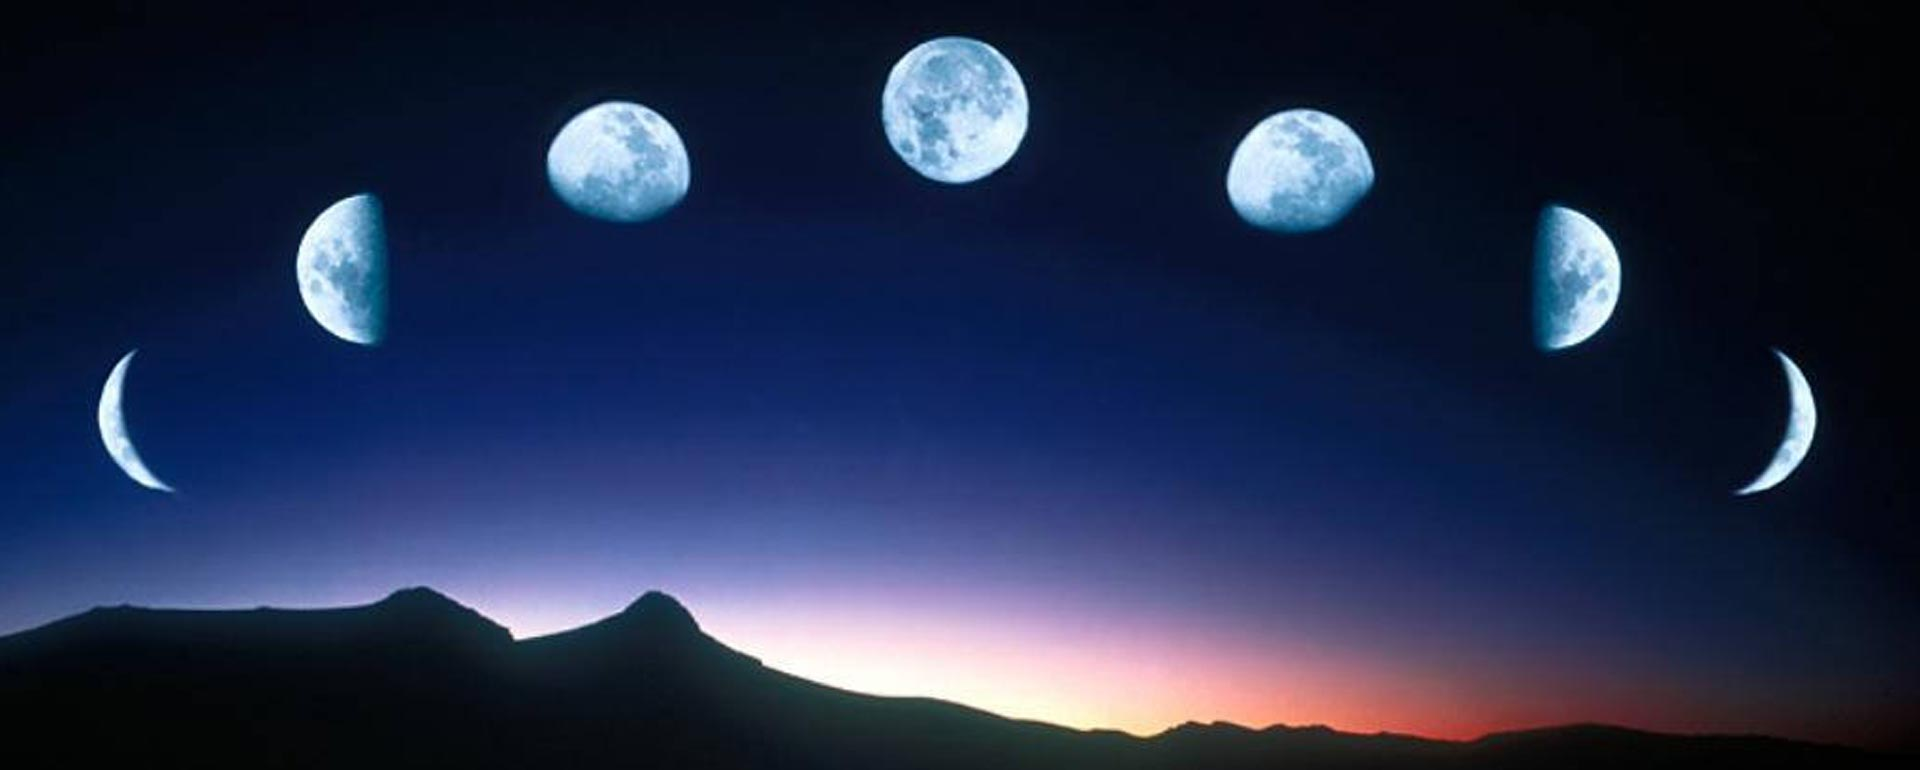 sacred feminine power moon phases slider image